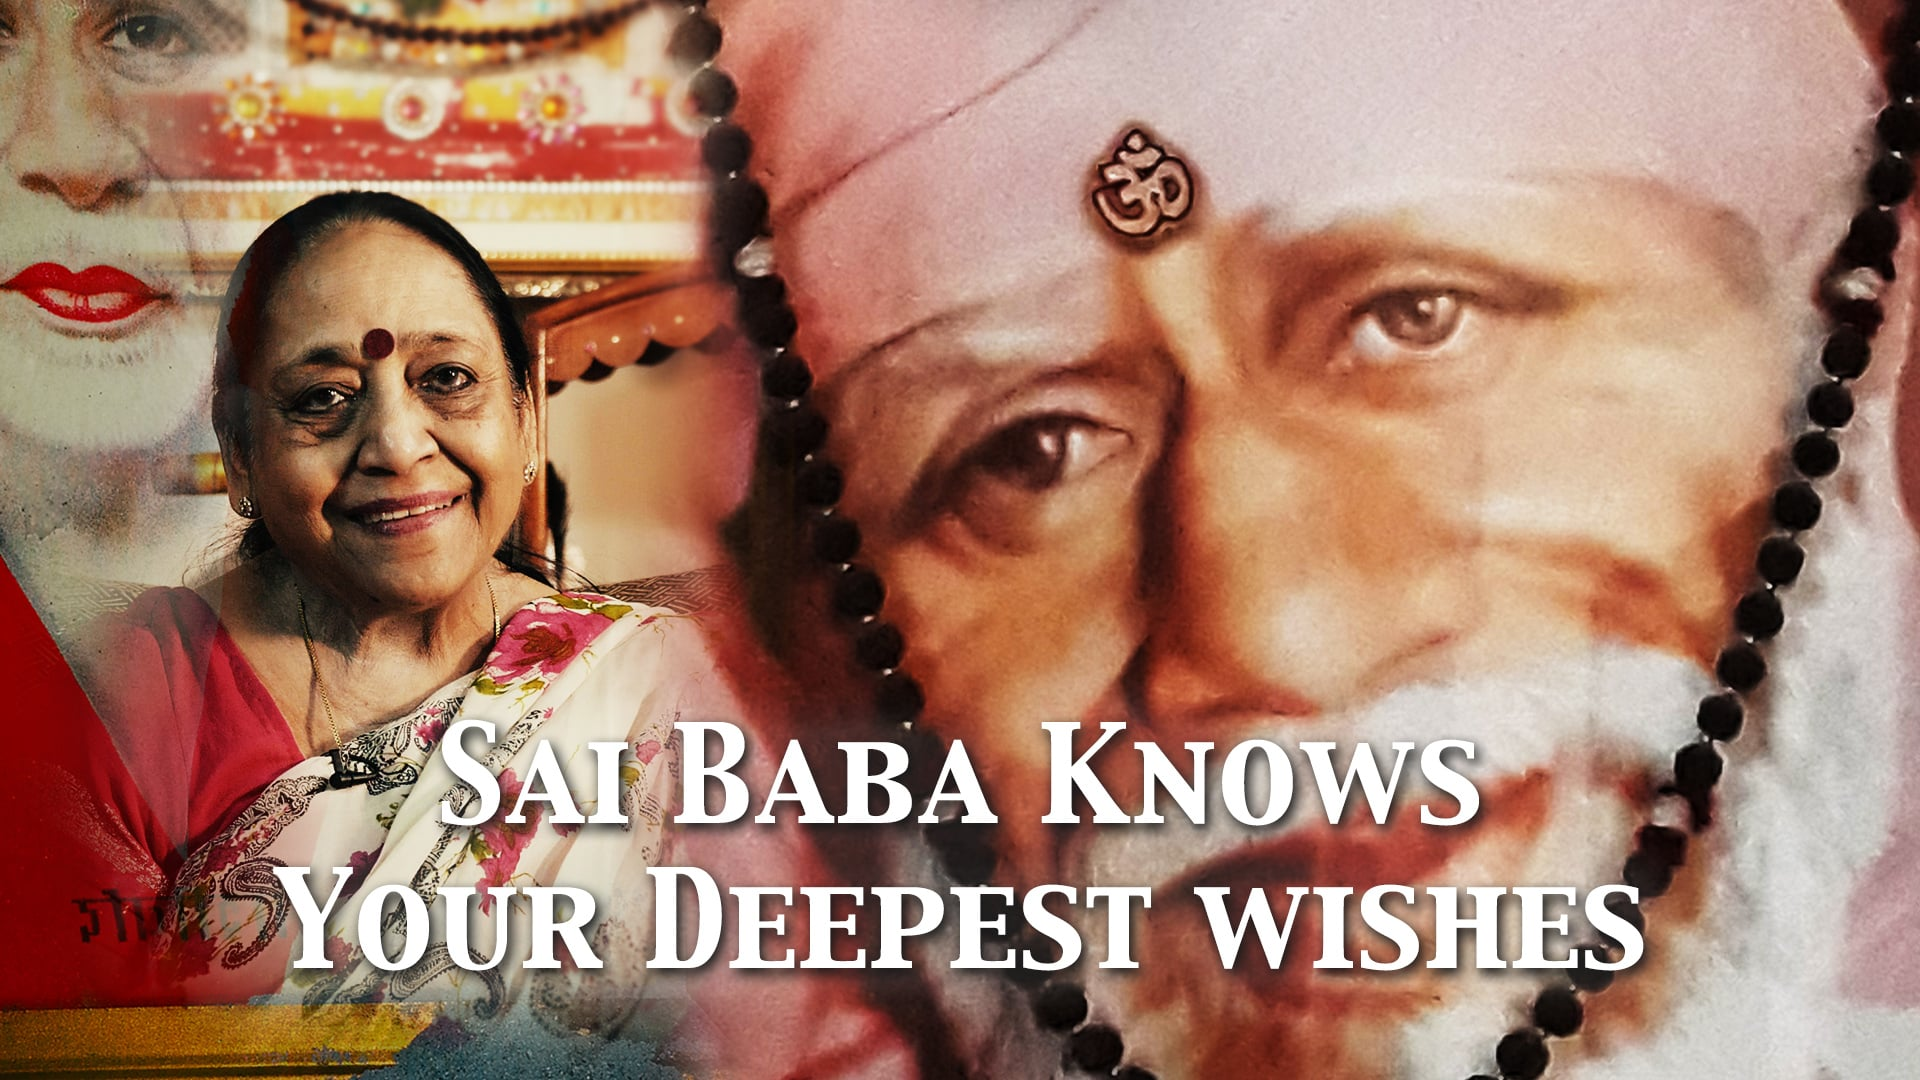 Sai Baba knows Your Deepest Wishes